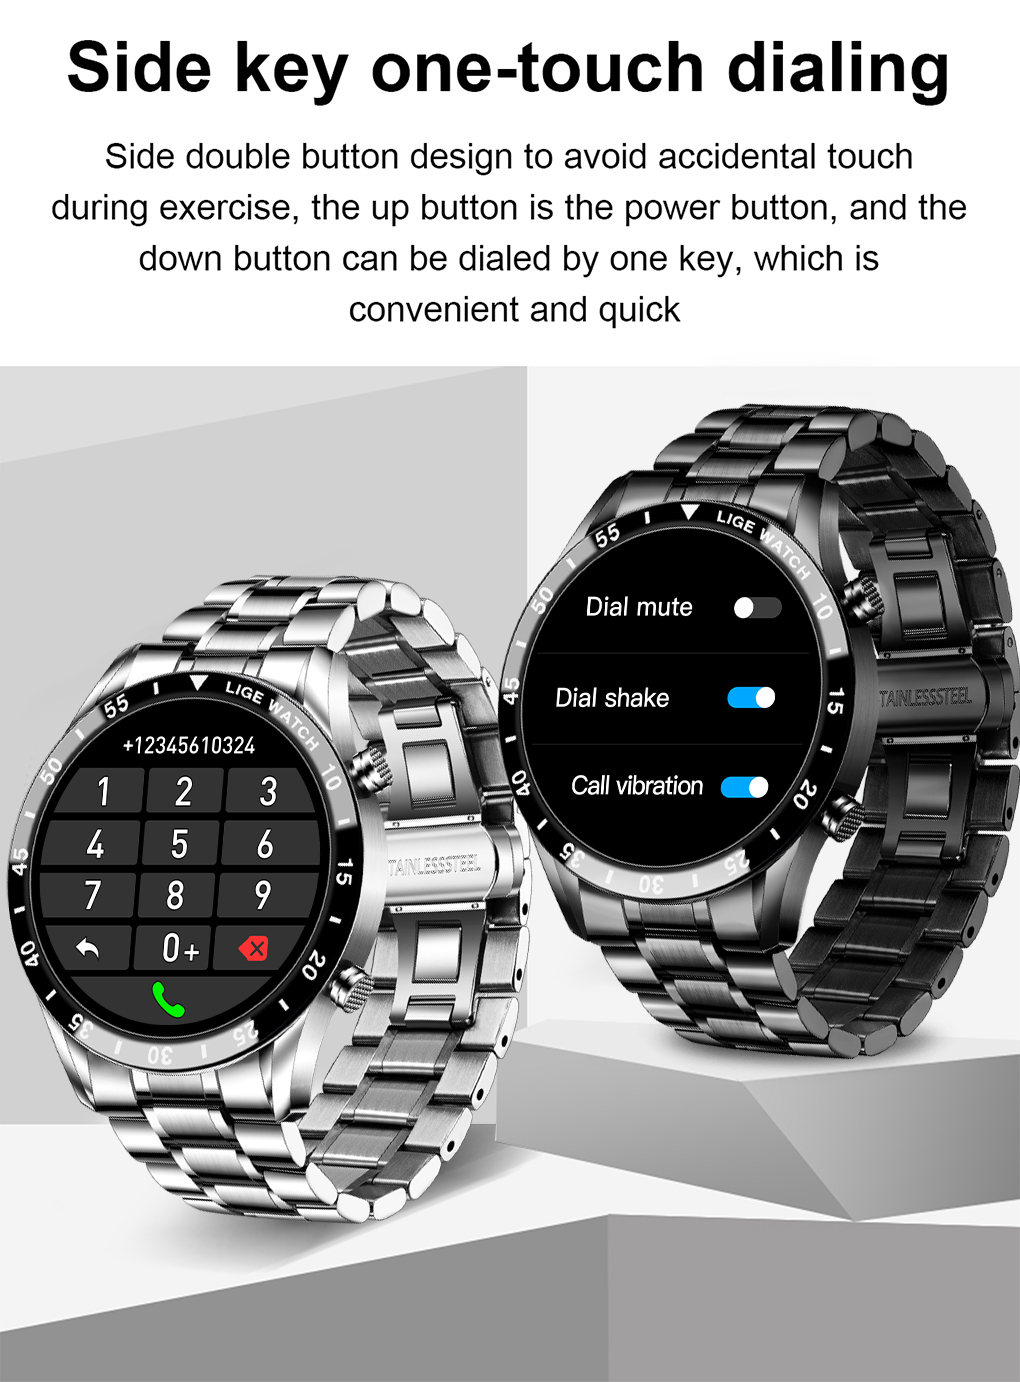 H347a024a6c1149a99463b336b5833ba00 LIGE 2021 New Smart Watch Men Full Touch Screen Sports Fitness Watch Waterproof Bluetooth Call For Android iOS Smartwatch Mens